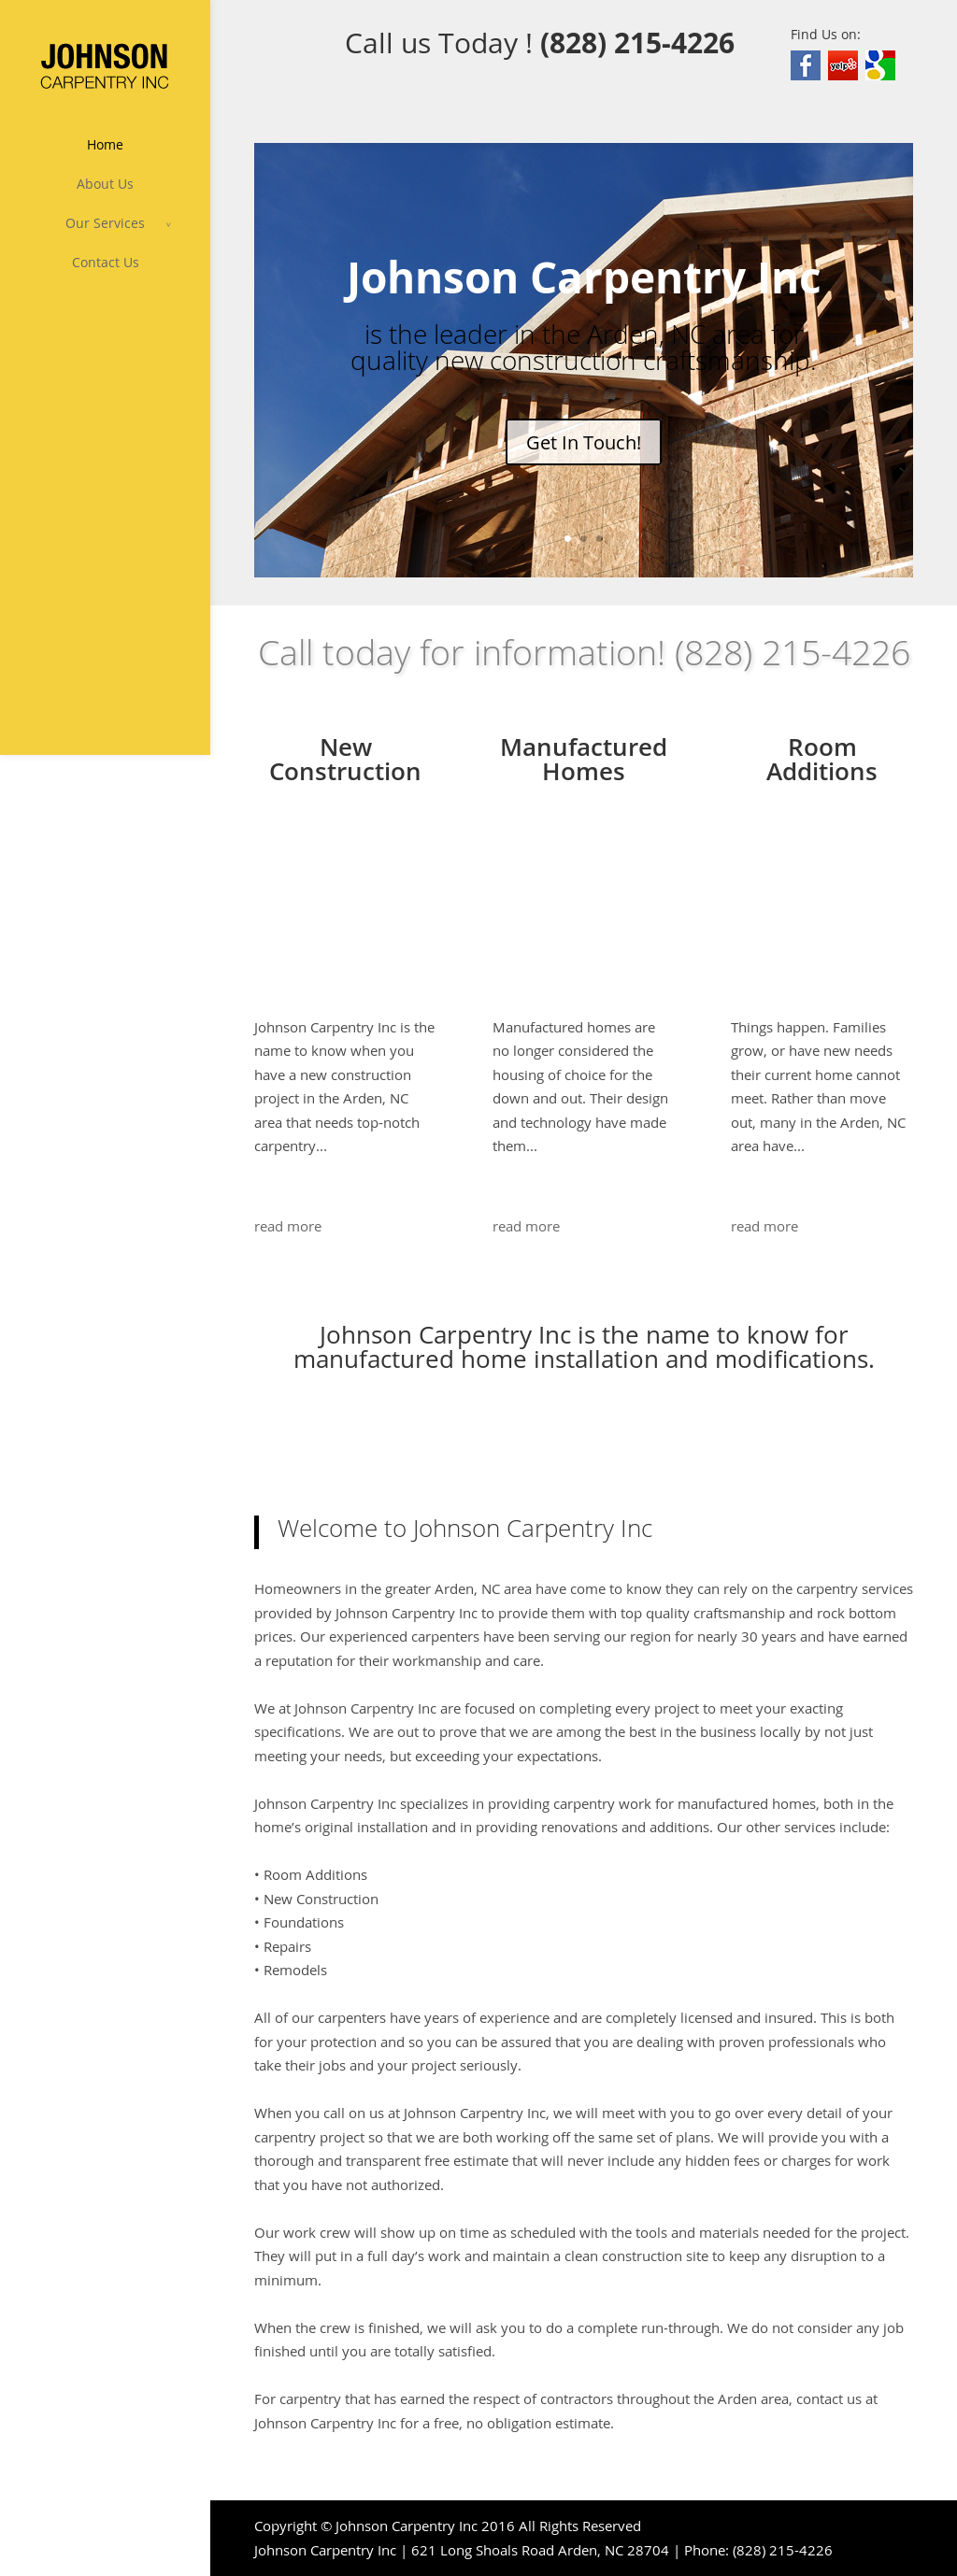 johnson and johnson company profile and Our heritage read the story around the world with johnson & johnson: 6 unbelievable places company products have been read the story j&j fun facts.